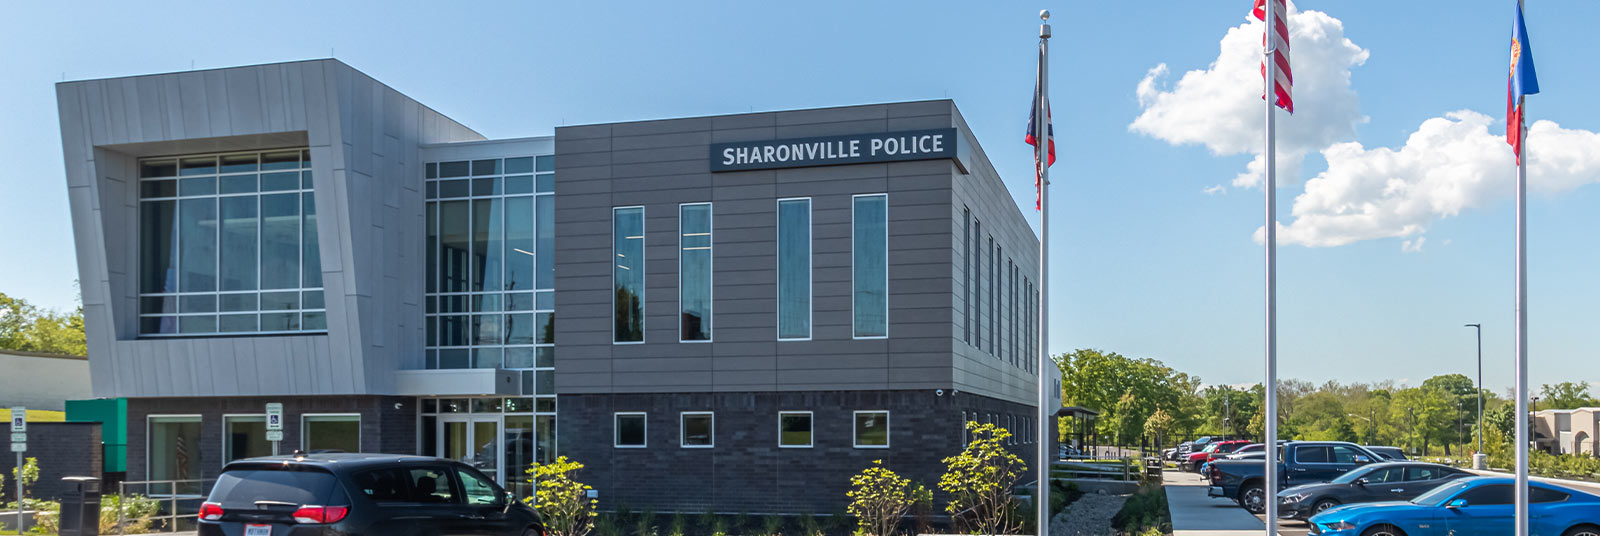 Exterior of the Sharonville Police Department.